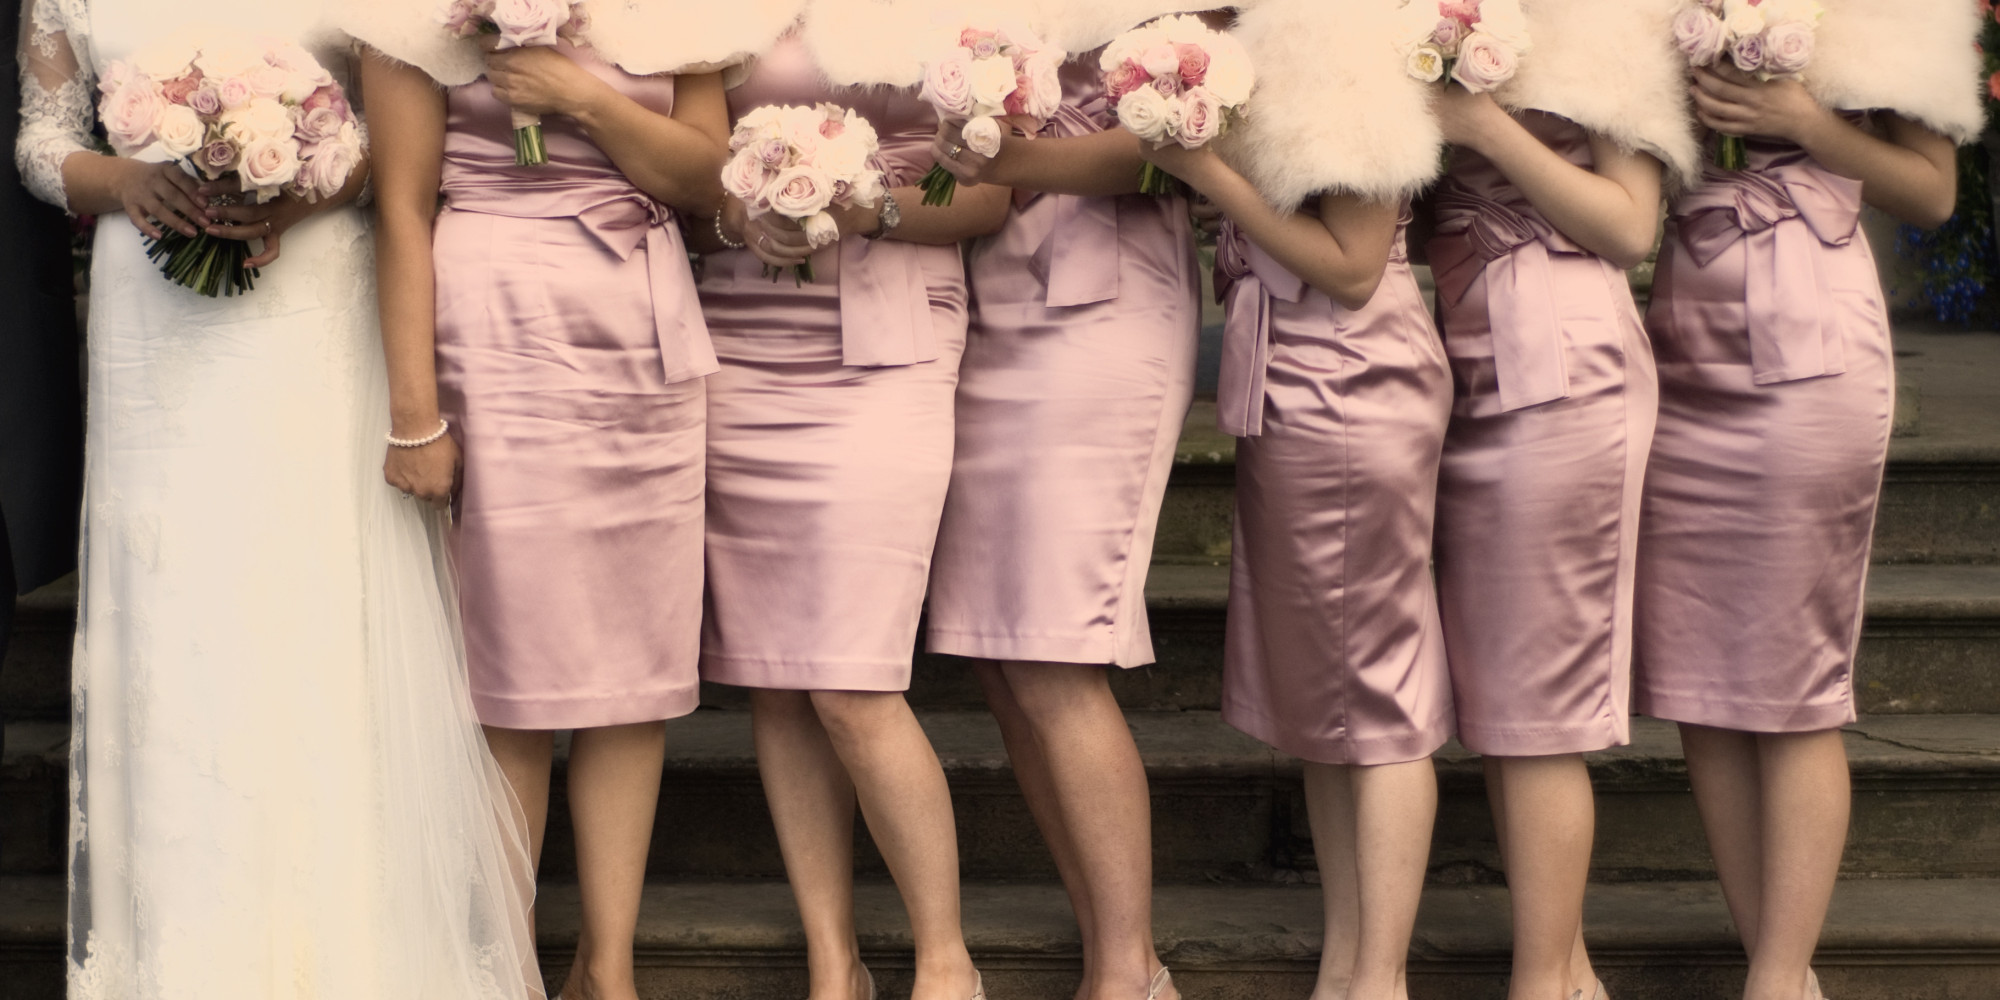 5 reasons you should stop complaining about being a bridesmaid 5 reasons you should stop complaining about being a bridesmaid huffpost ombrellifo Image collections